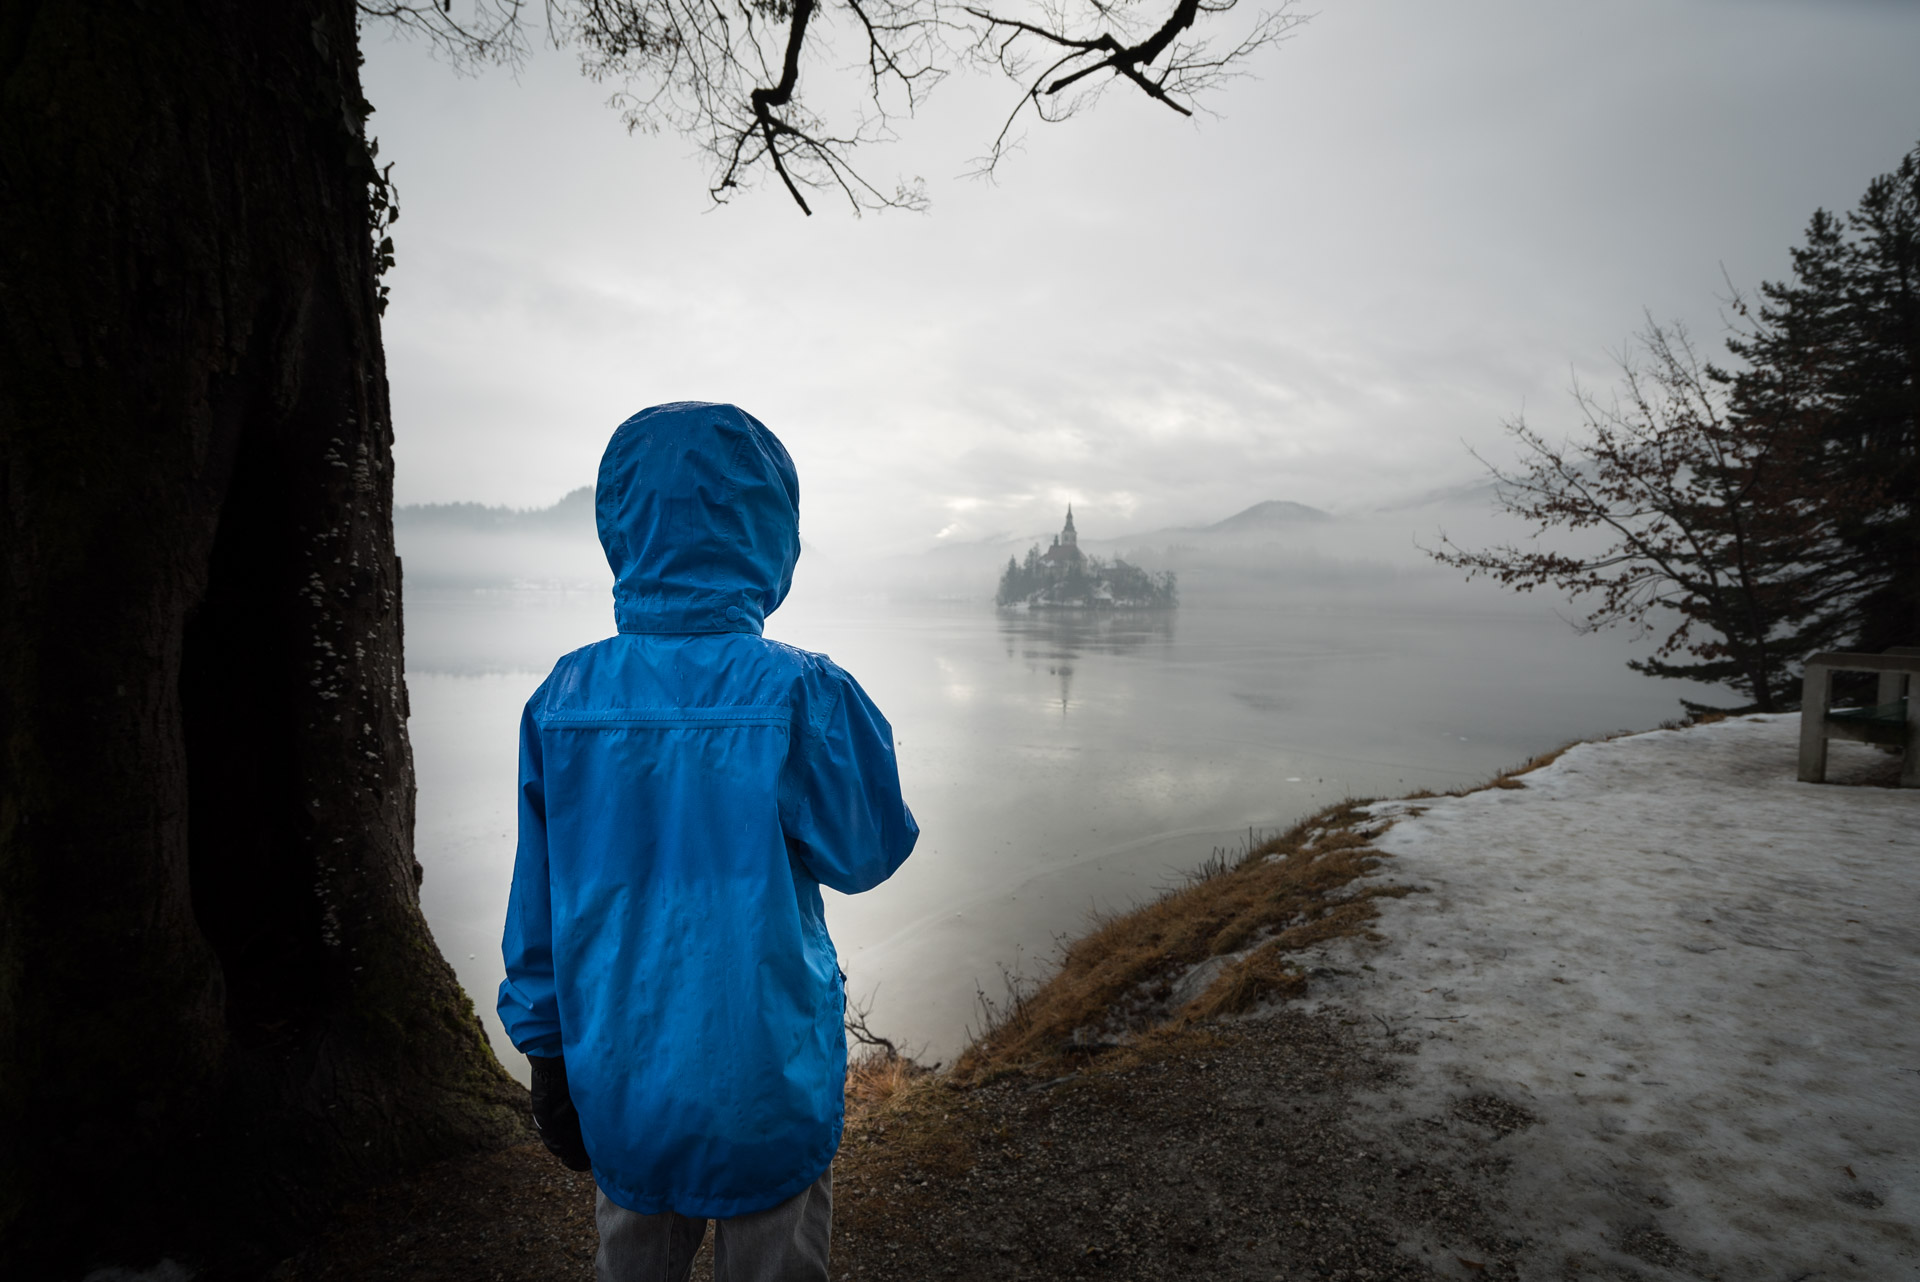 things to do in slovenia in winter includes a visit to lake bled